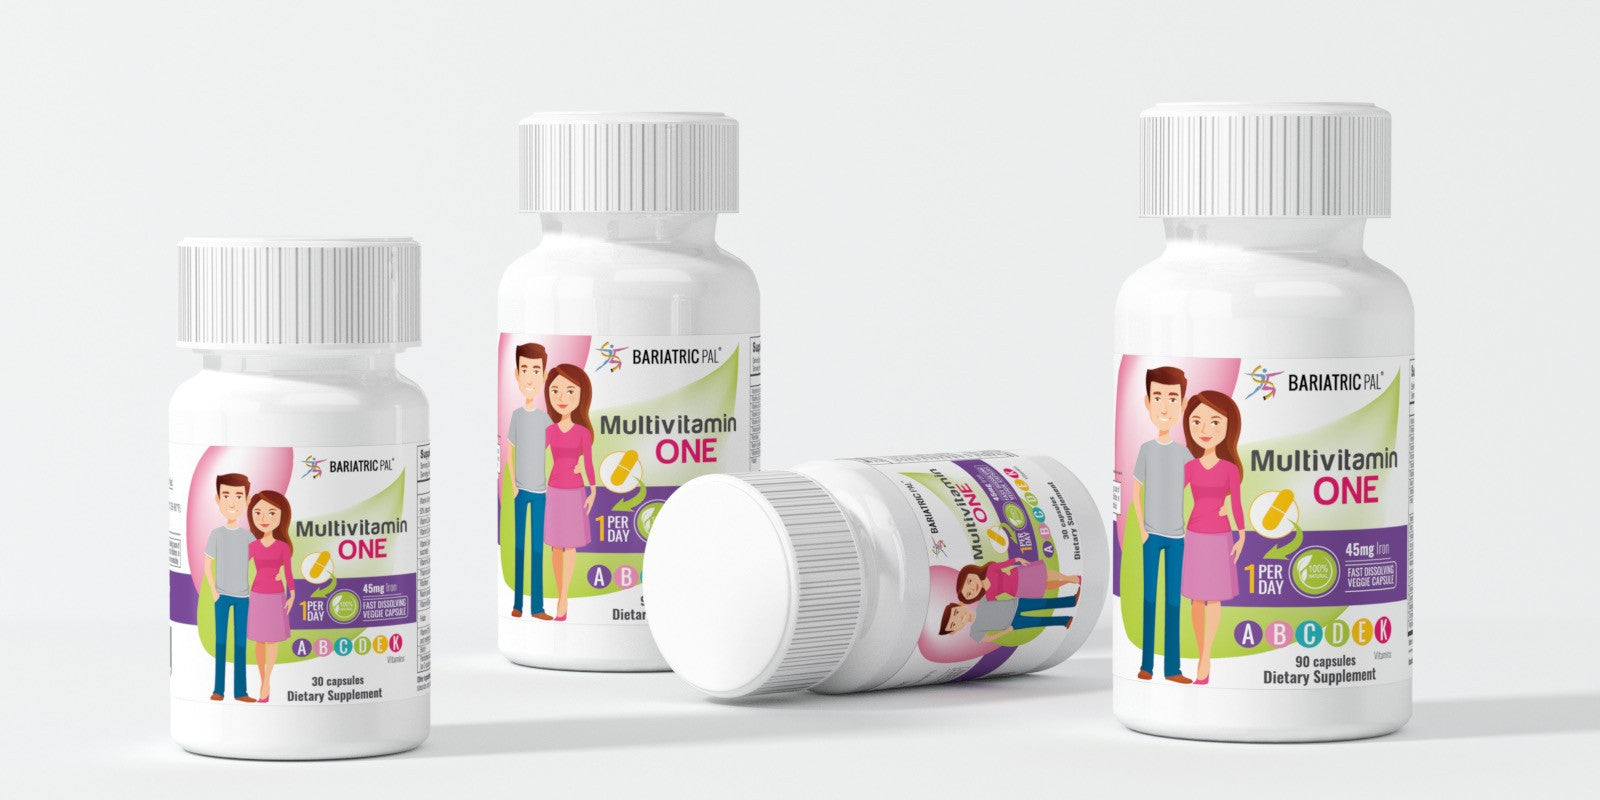 BariatricPal Multivitamin ONE